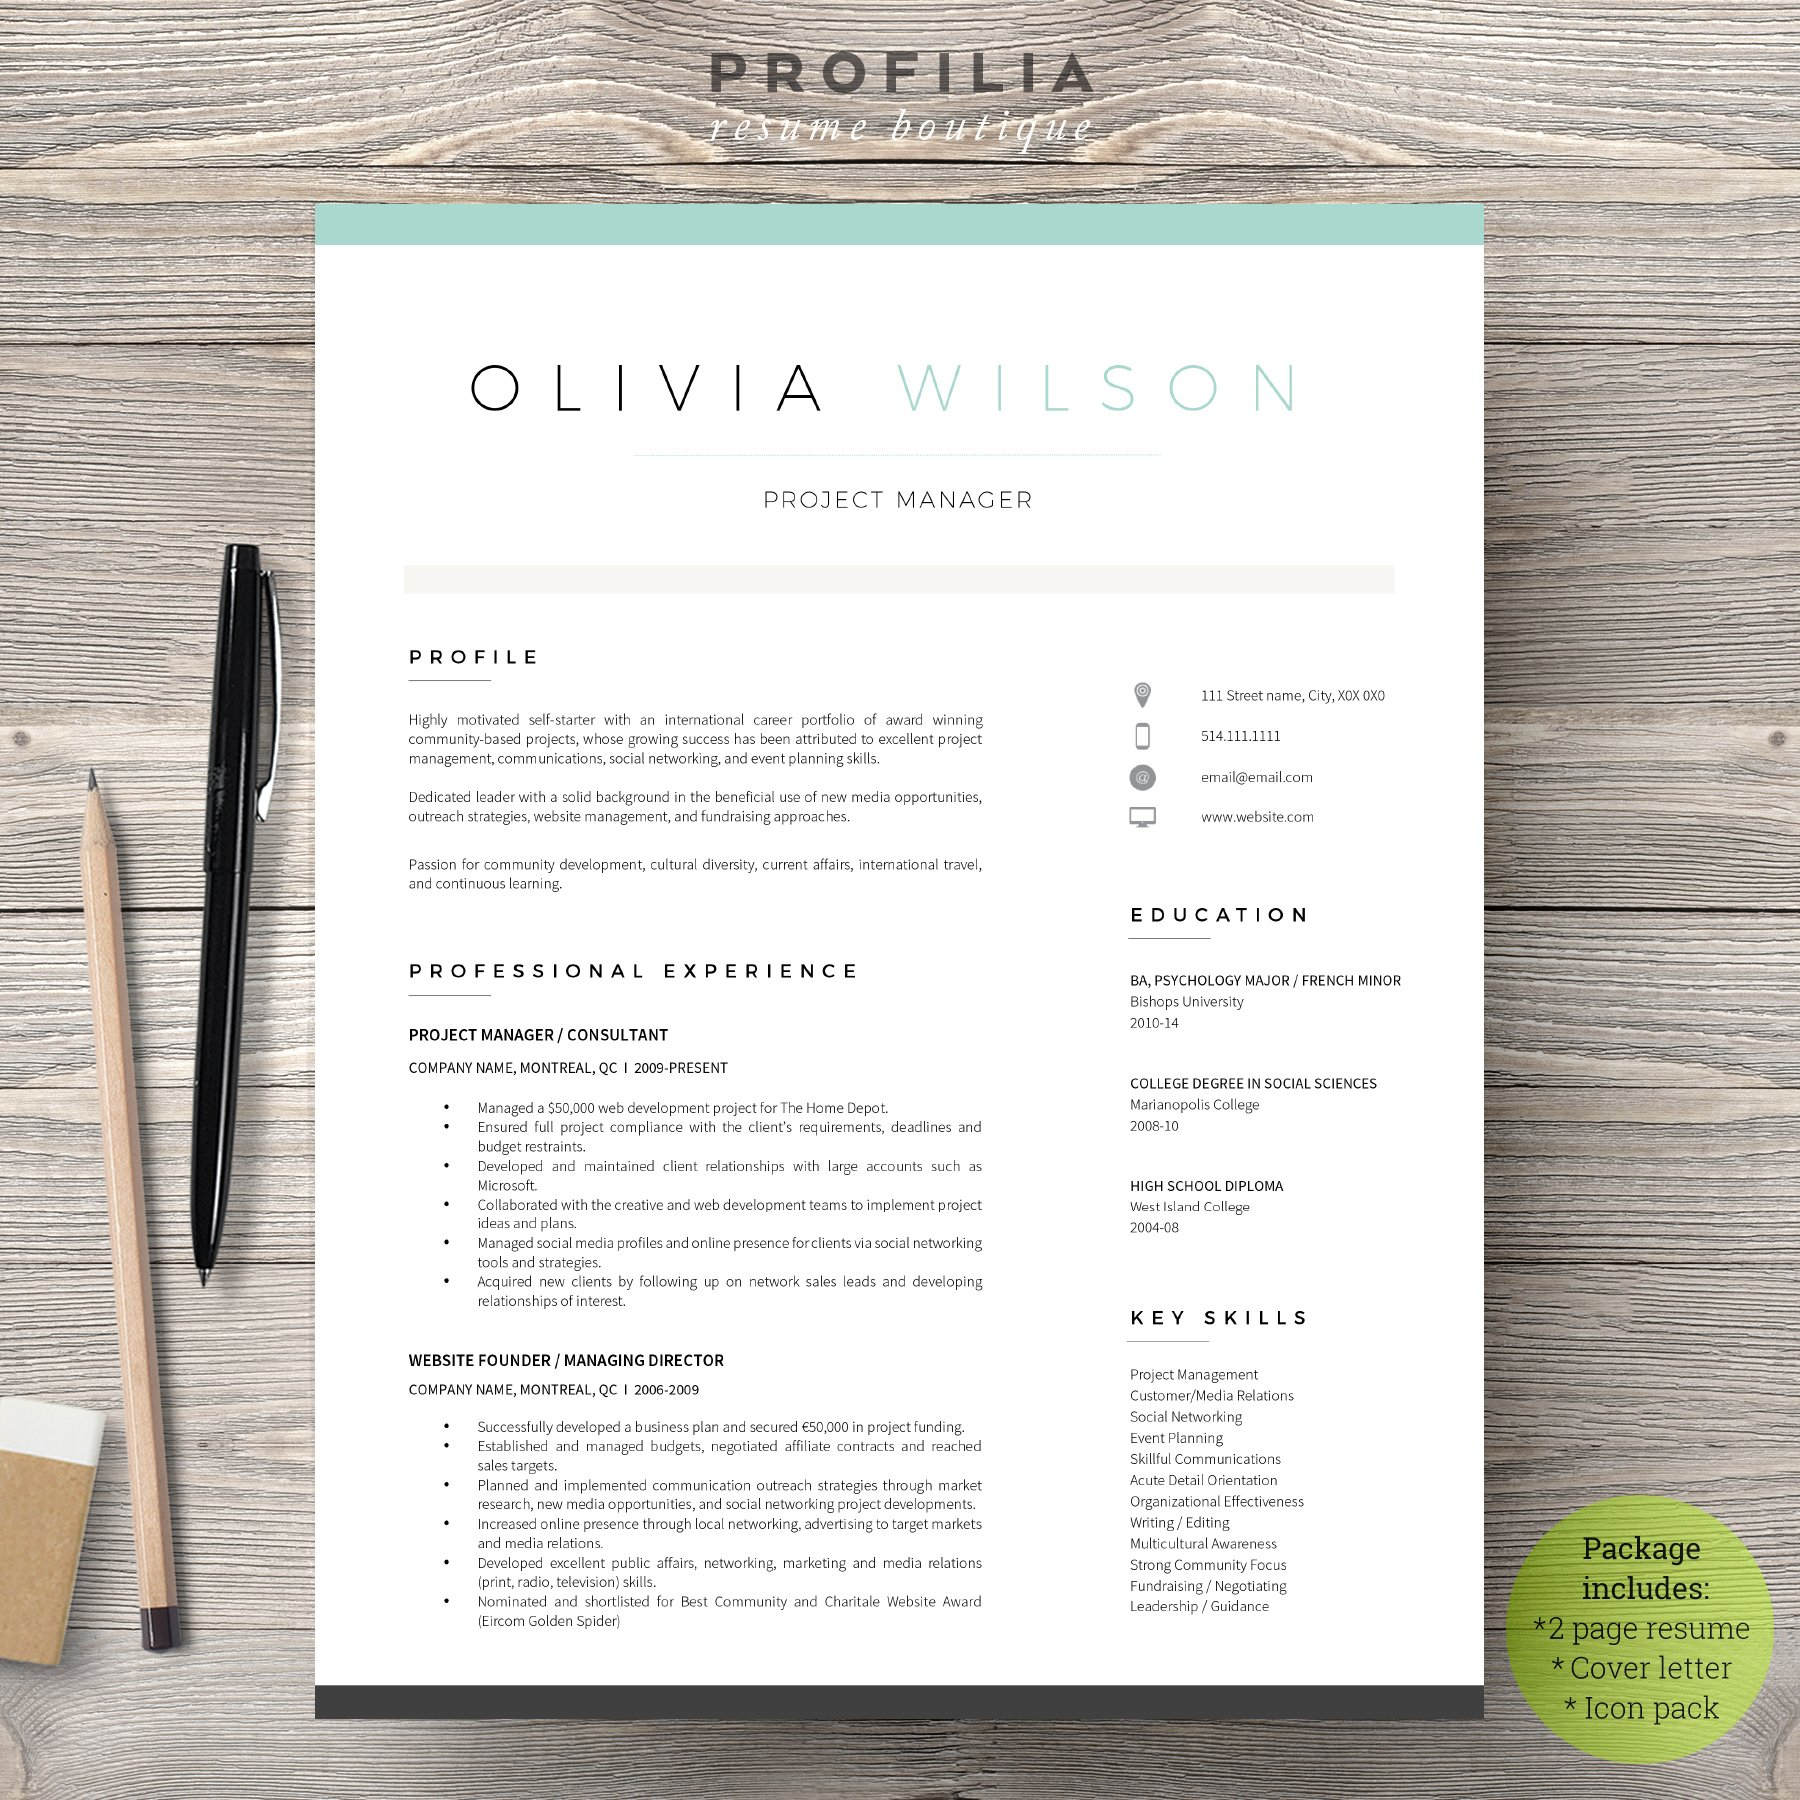 Word resume cover letter template spiritdancerdesigns Image collections